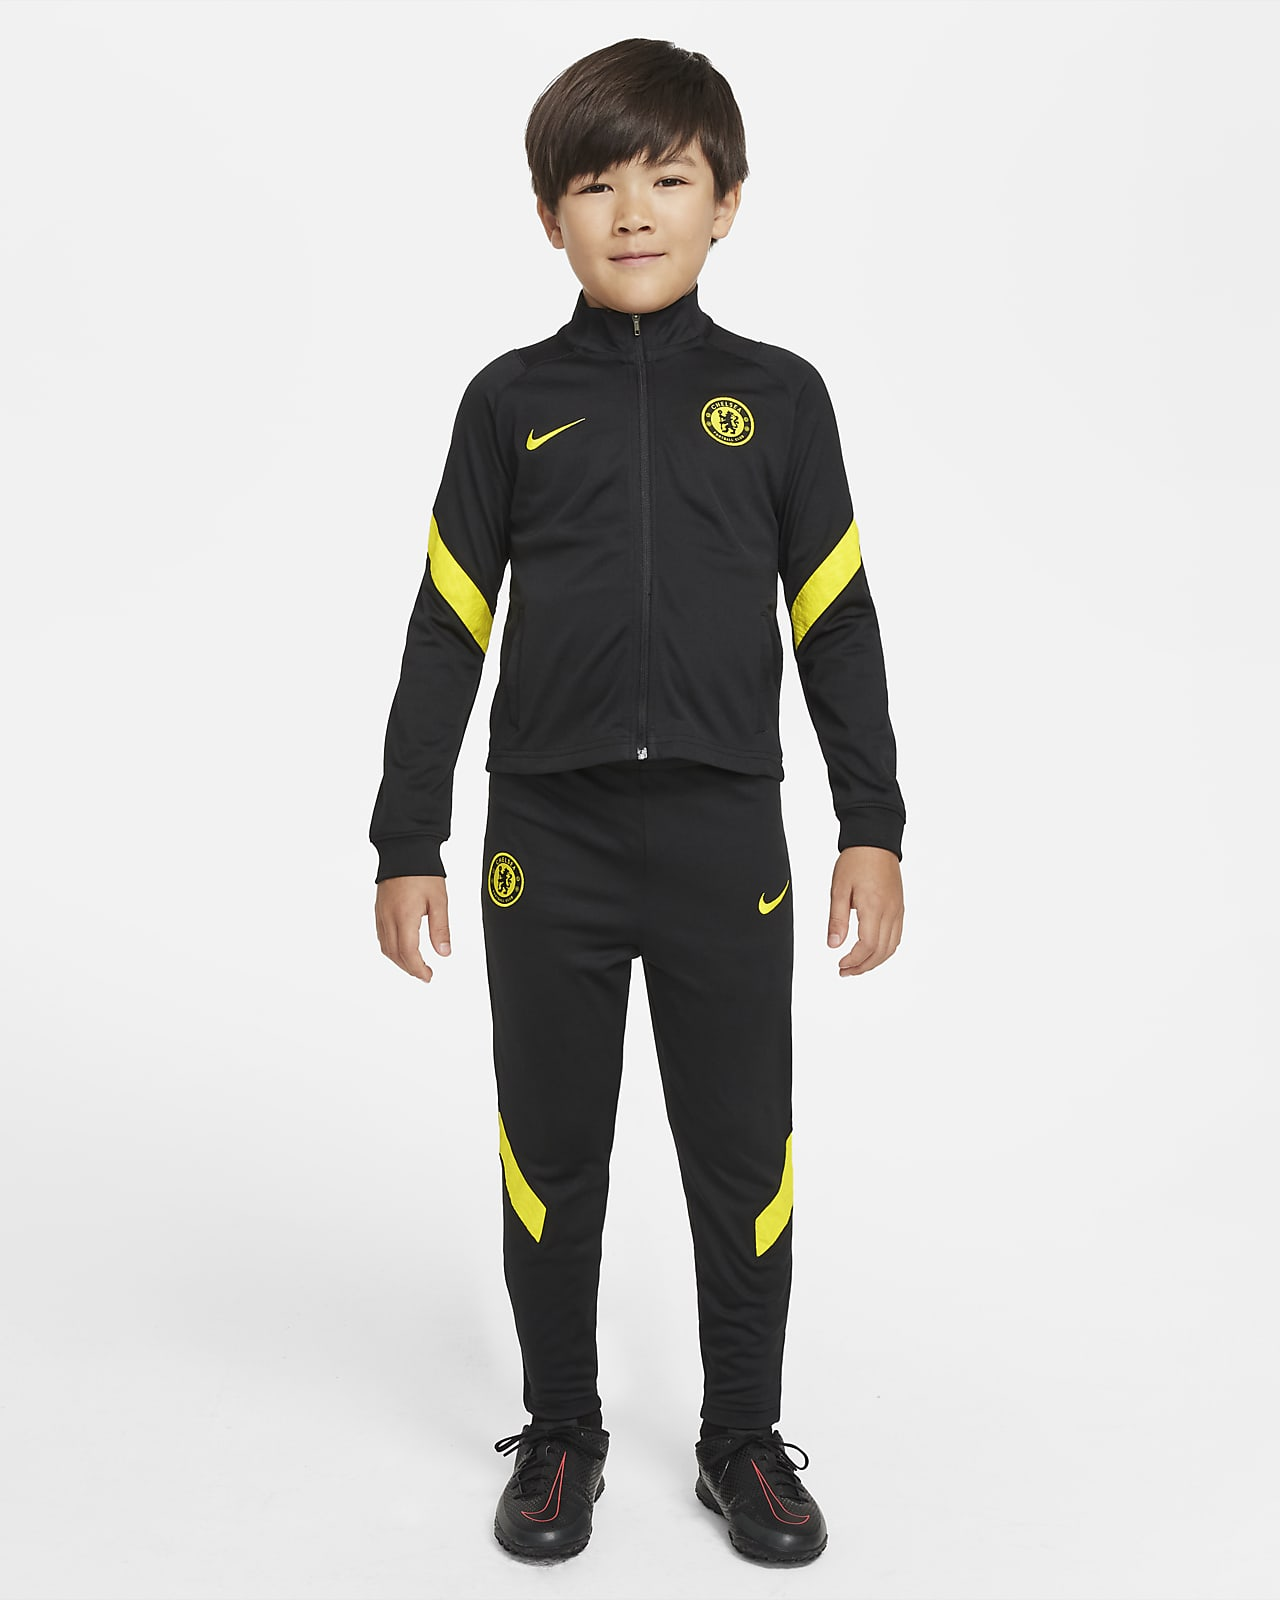 Chelsea F.C. Strike Younger Kids' Nike Dri-FIT Football Tracksuit